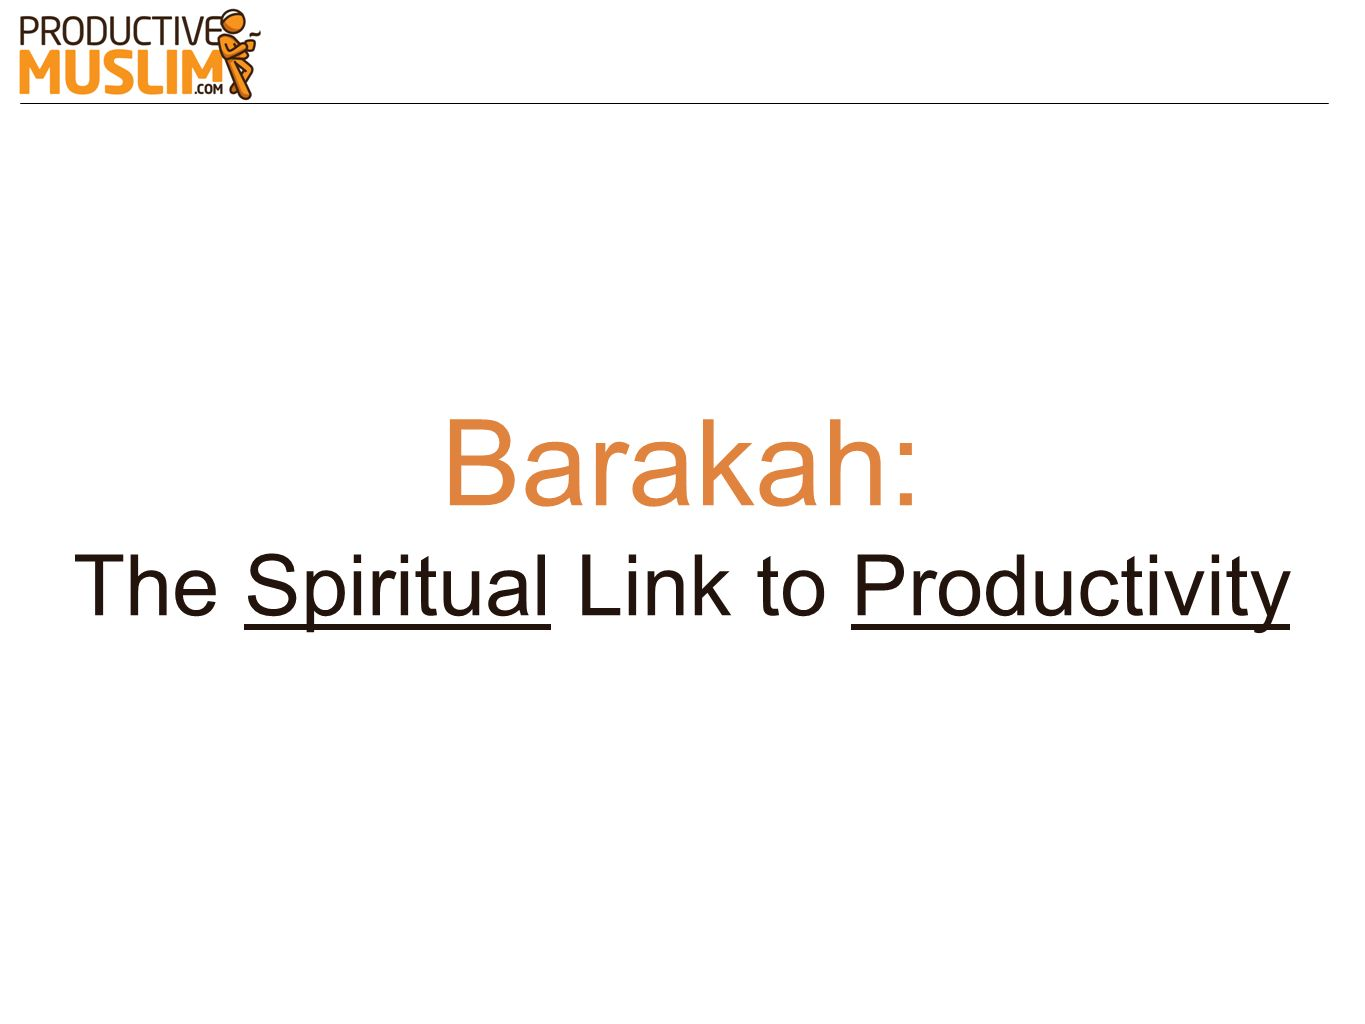 The Spiritual Link to Productivity